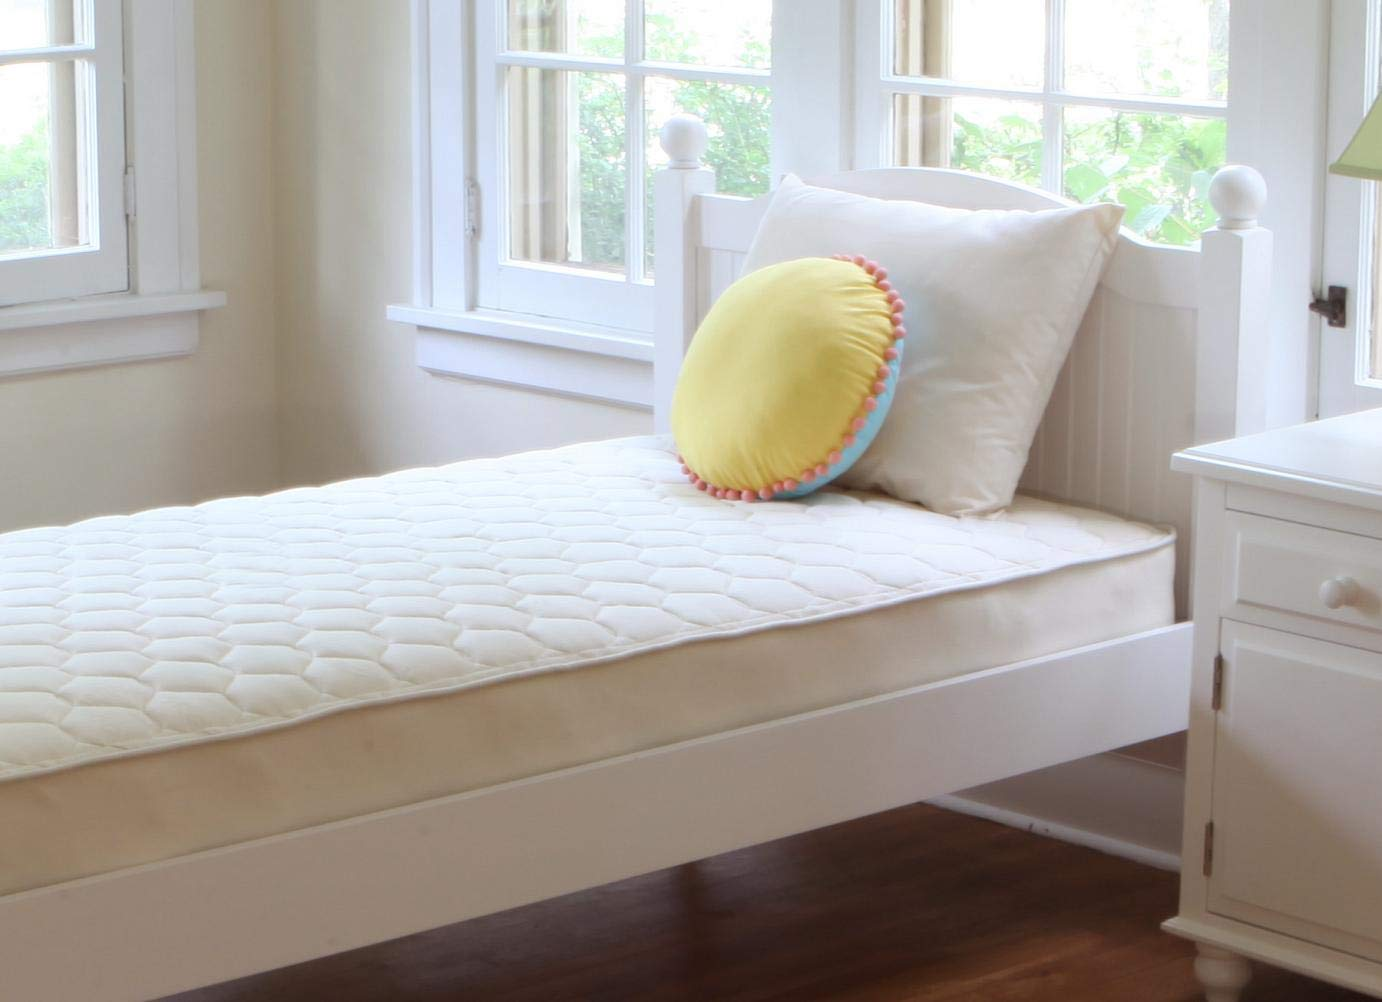 Naturepedic Organic Quilted Deluxe 1-Sided Mattress - Twin - Beige by Naturepedic